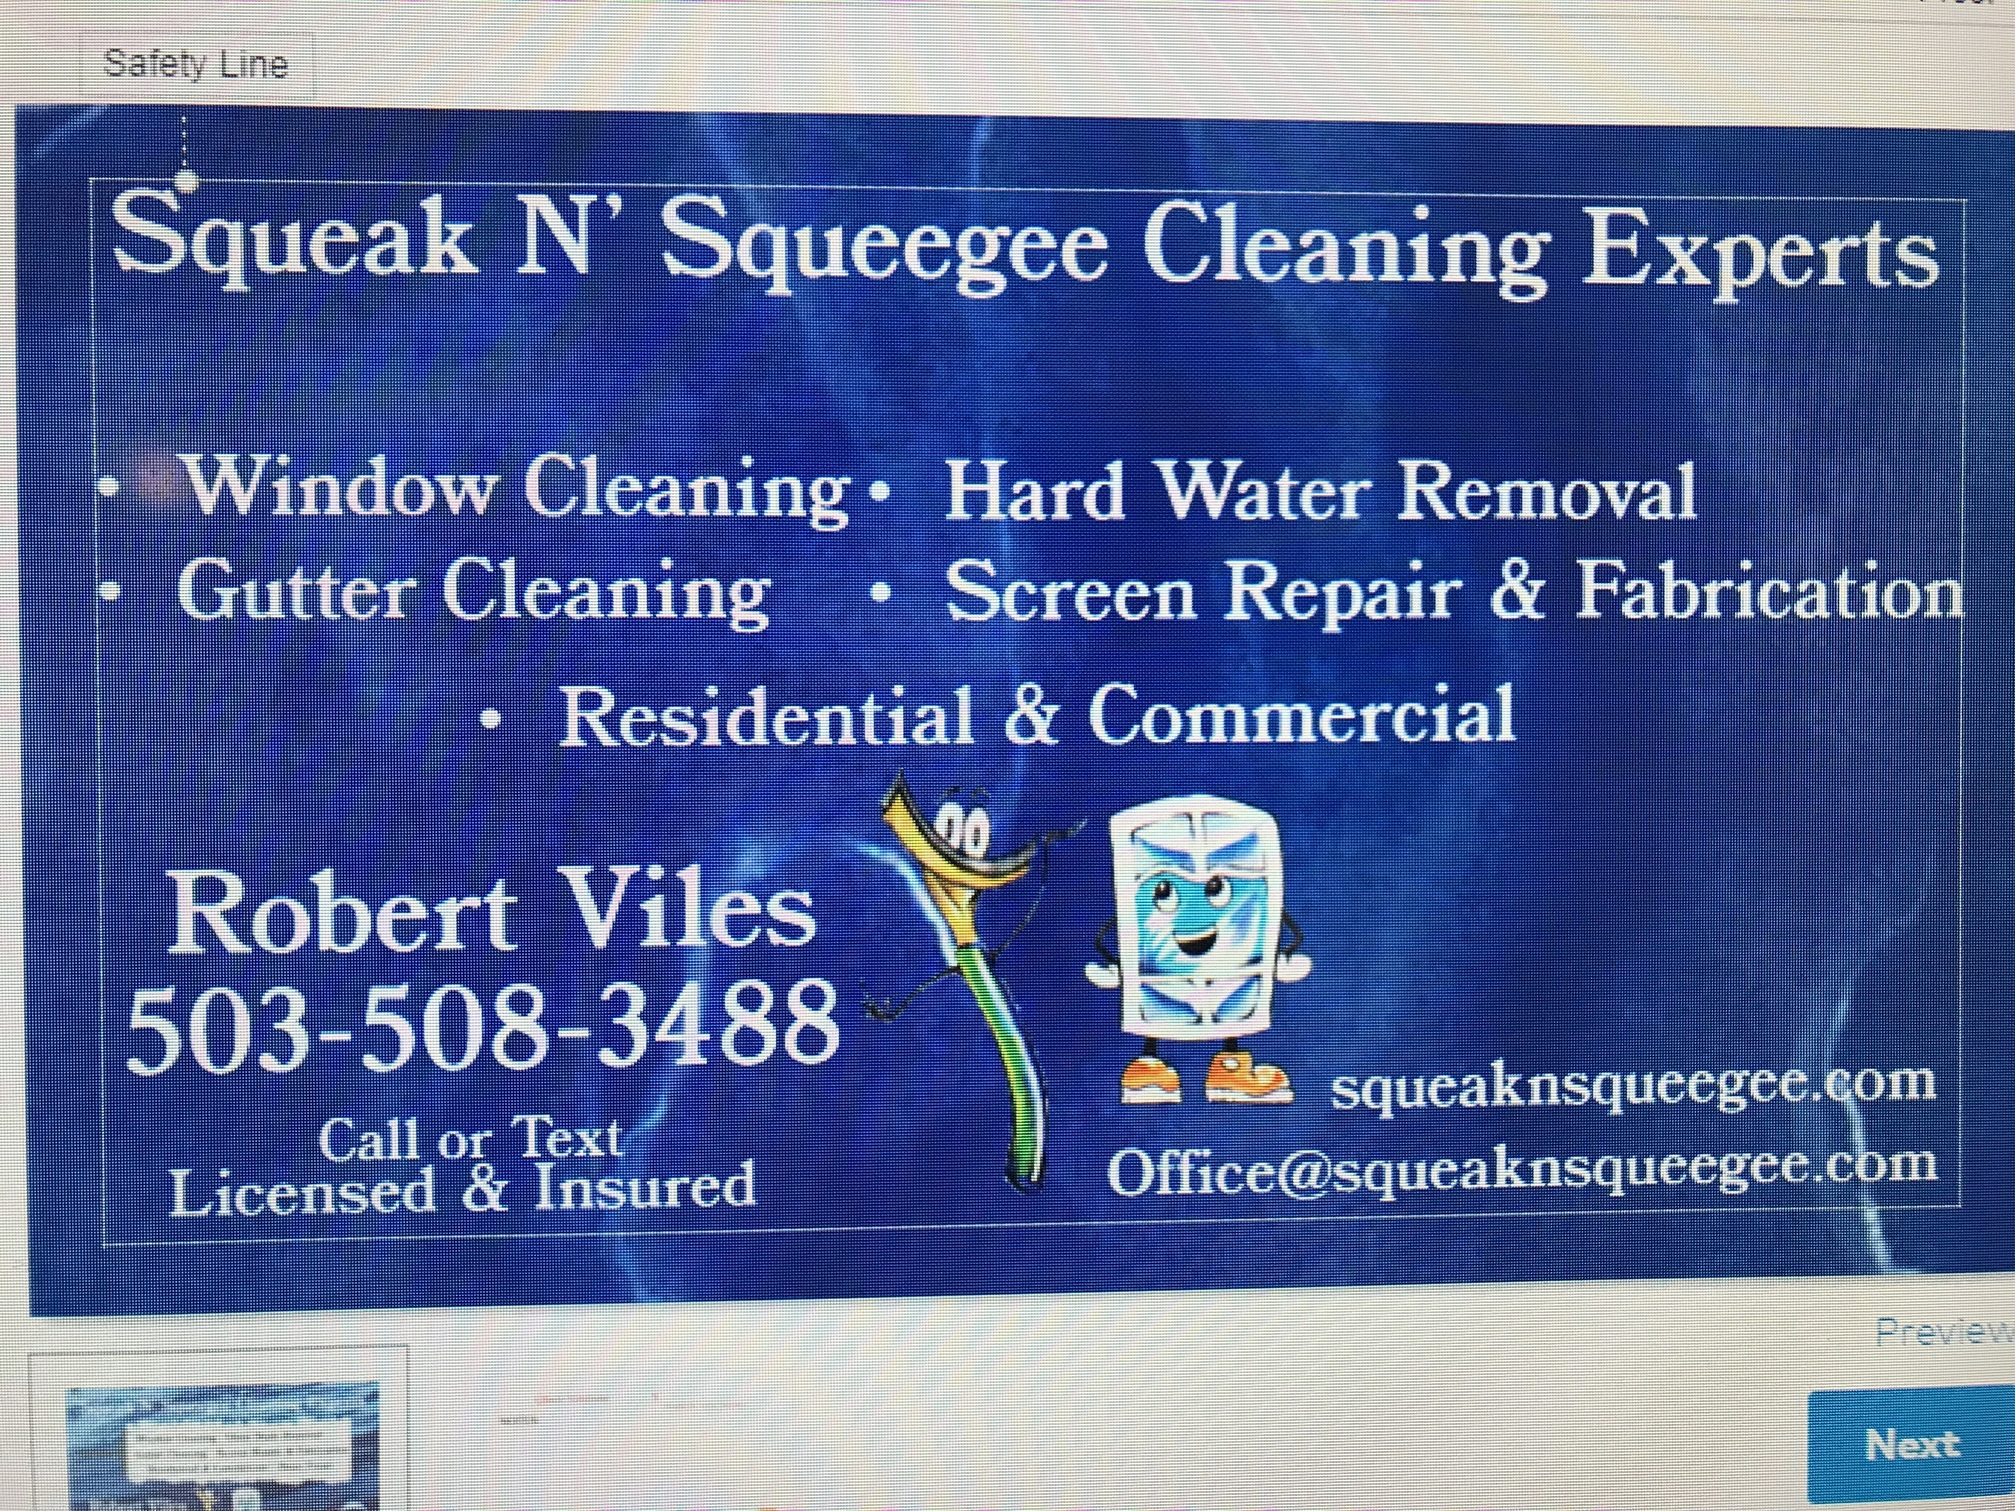 Calcium deposit removal, glass stain removal, hard water removal ...